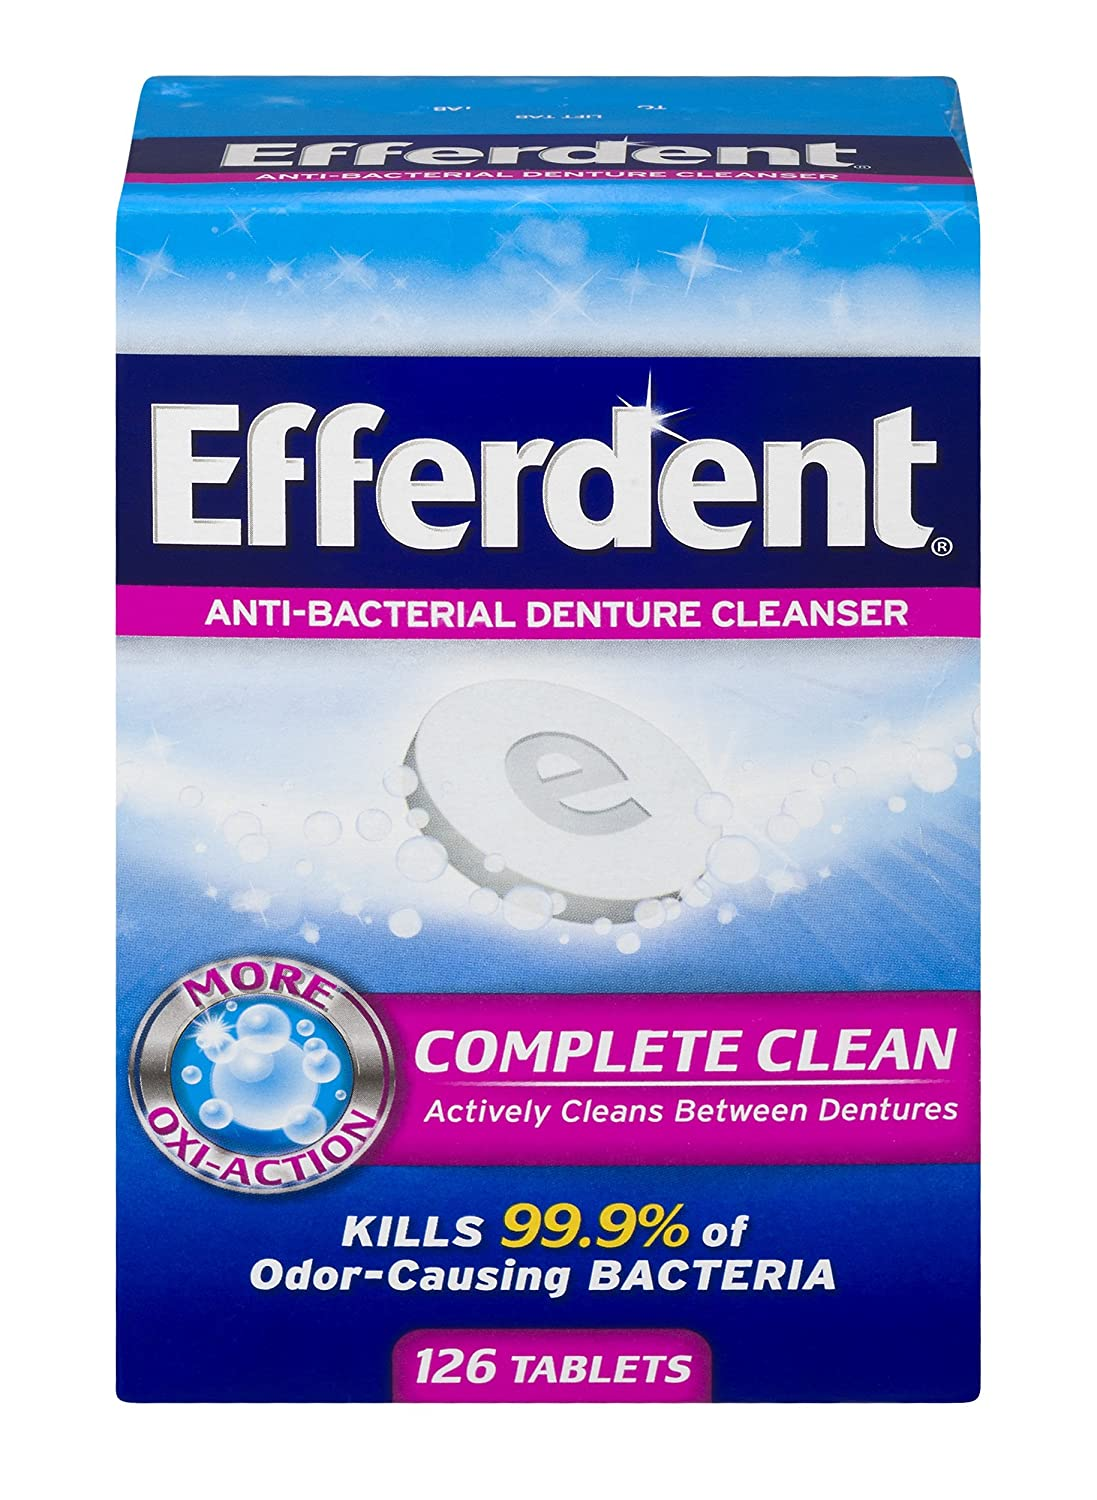 Efferdent Anti-Bacterial Denture Cleansers | 126 tablets | Actively Cleans Between Dentures Medtech Product Inc. 10814832015883A